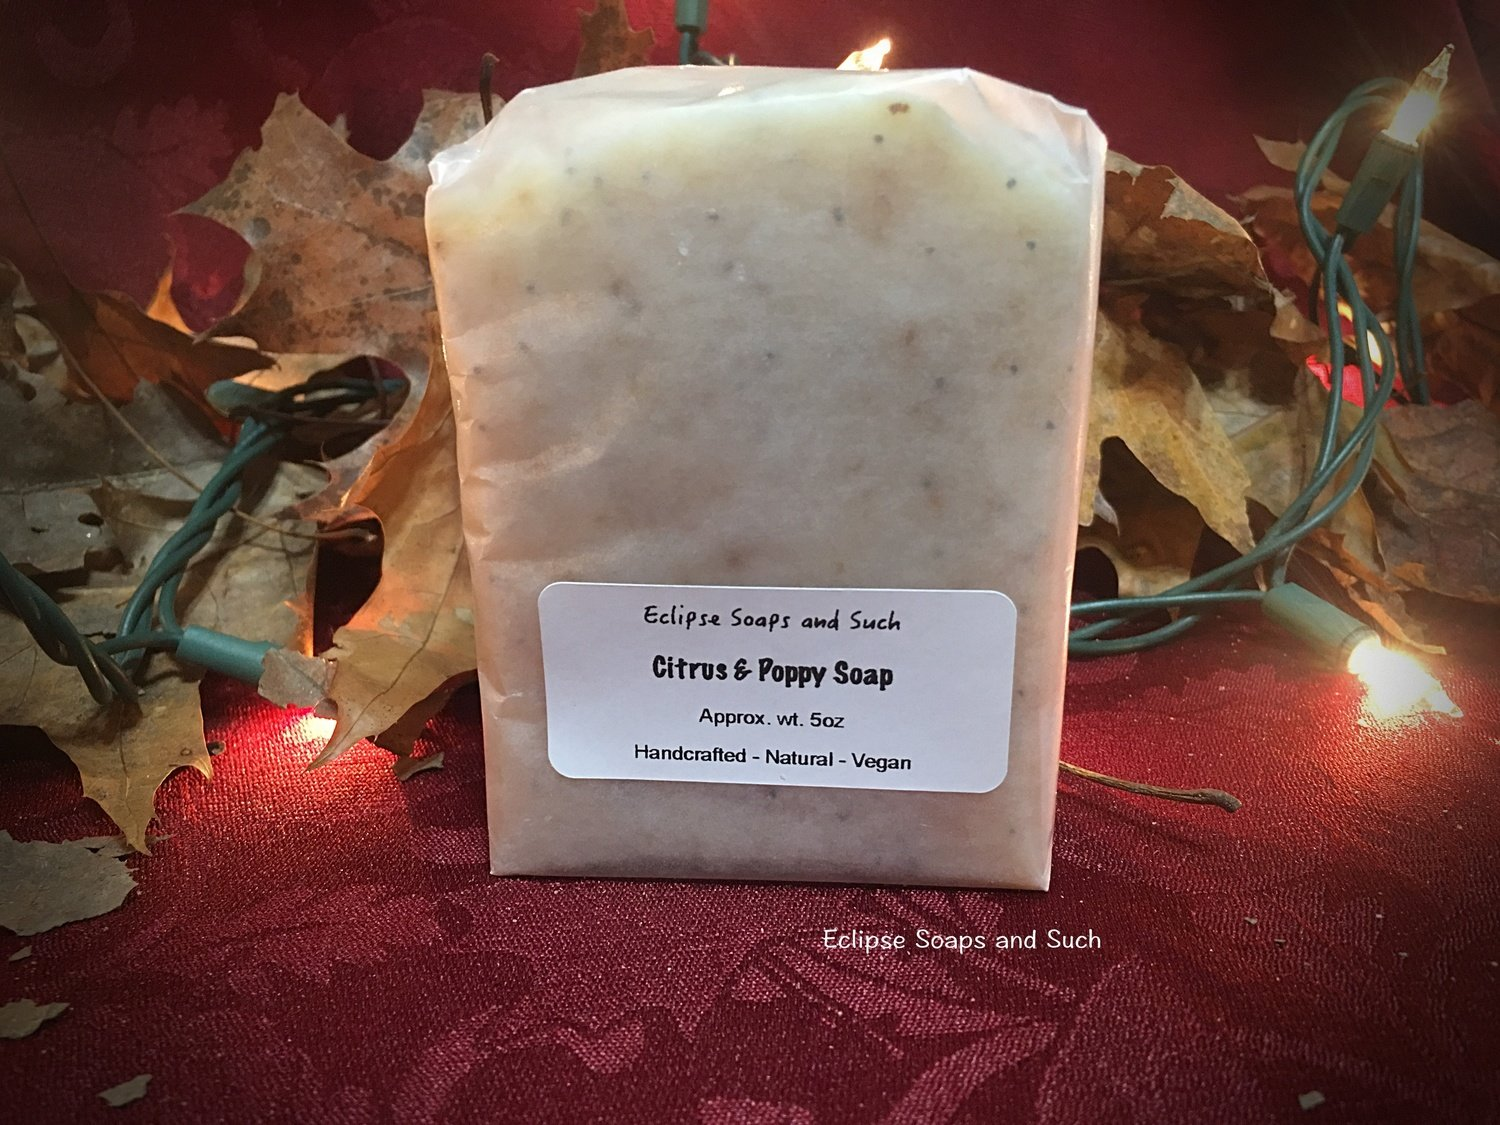 Citrus & Poppy Soap 5oz Vegan Friendly